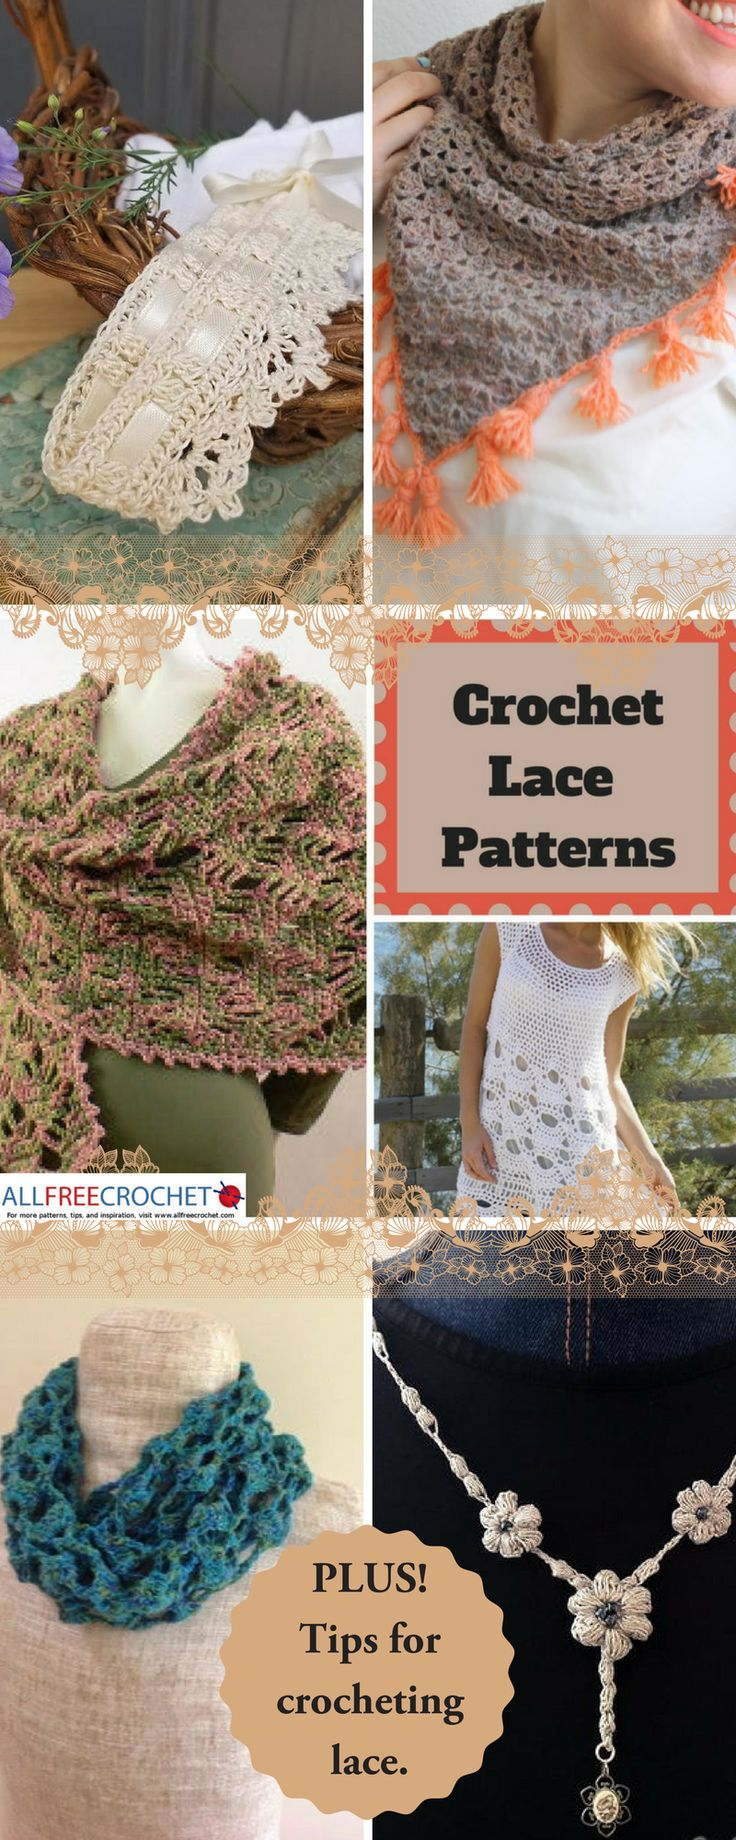 Find free crochet lace patterns and tips for crocheting lace!